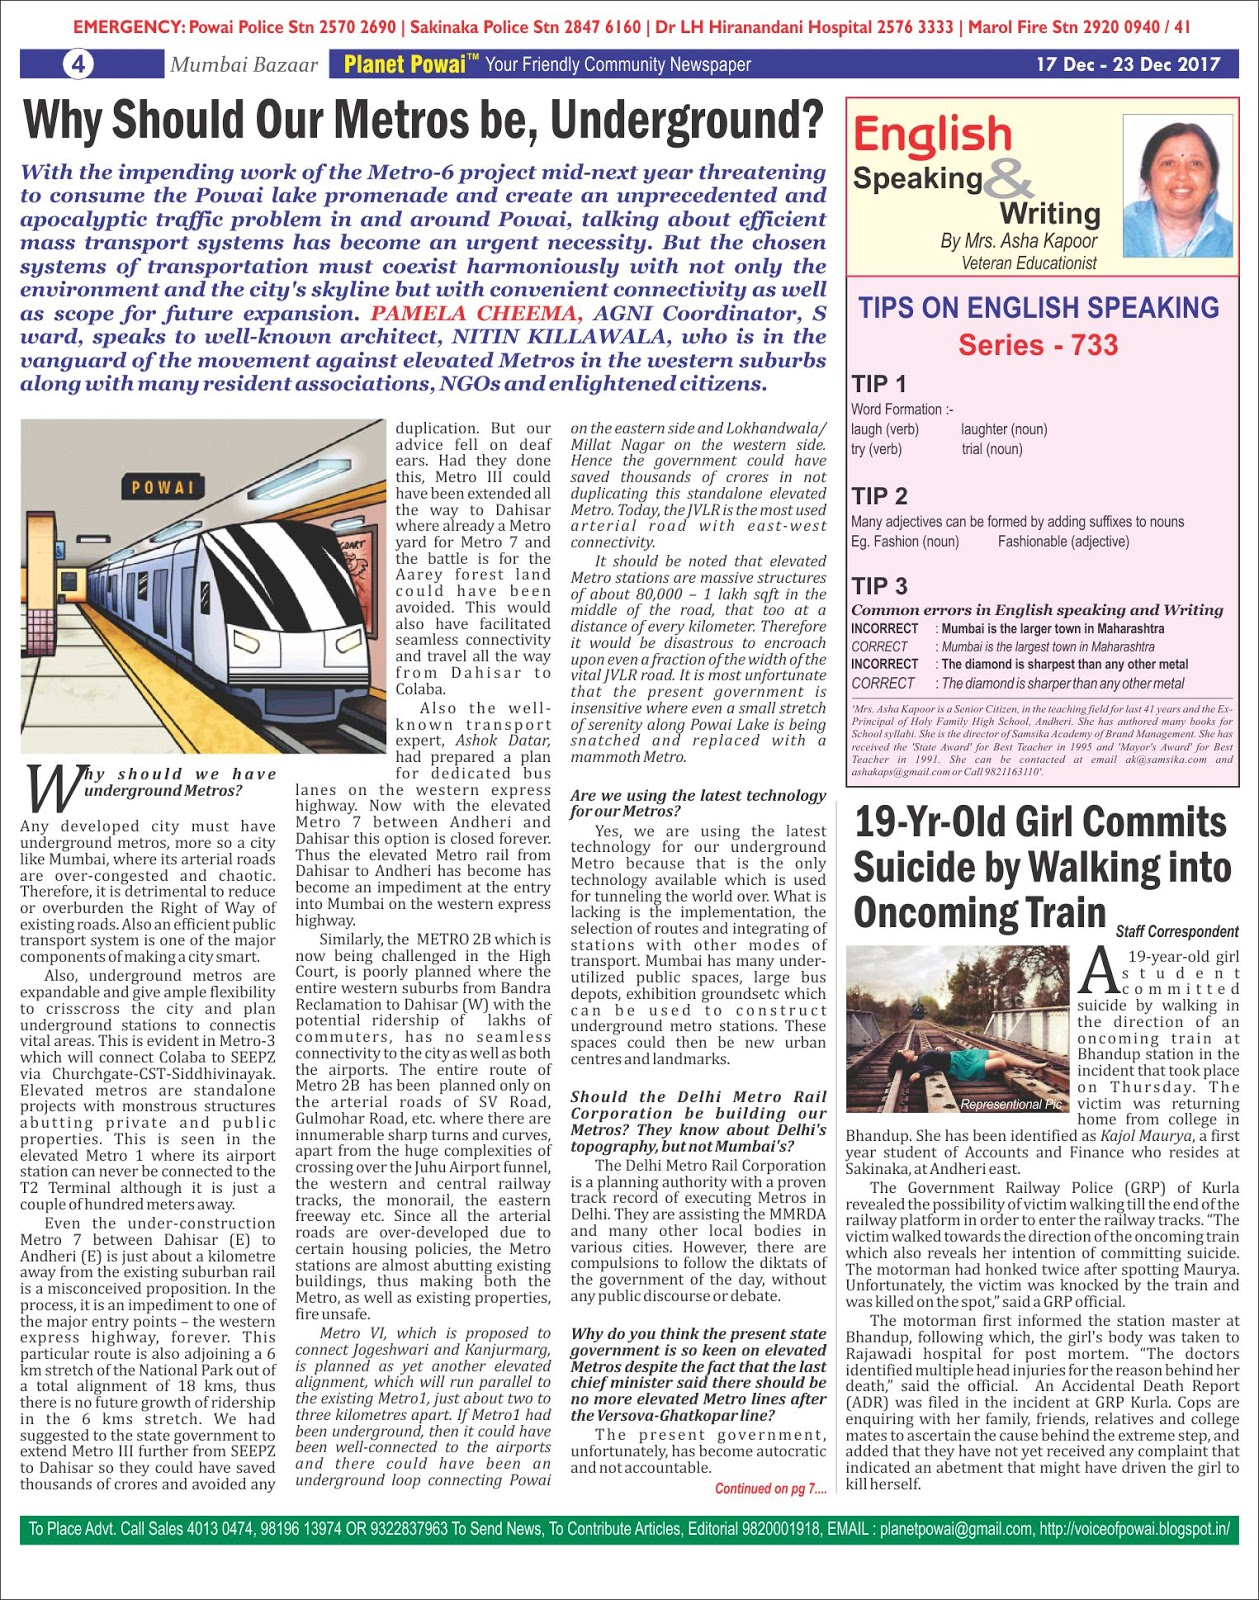 PLANET POWAI 17 December 2017 (Vol 13 Issue 38) | PLANET